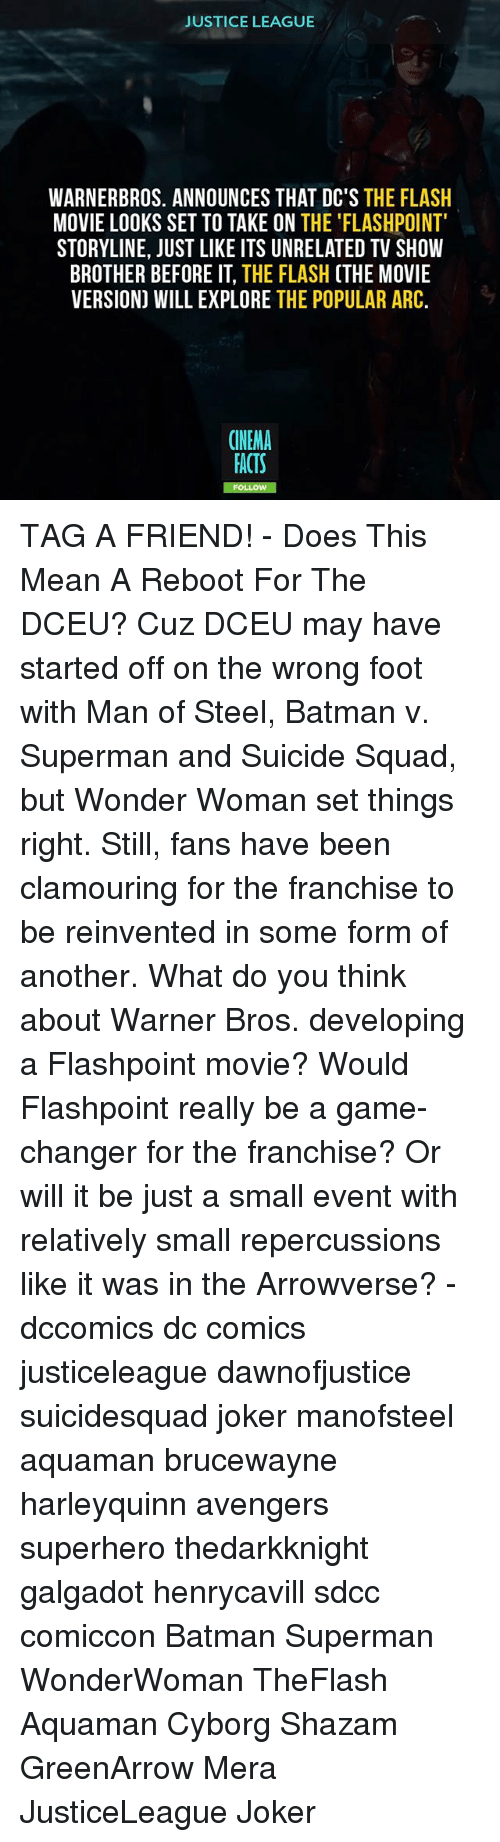 Suicide Squad: JUSTICE LEAGUE  WARNERBROS. ANNOUNCES THAT DC'S THE FLASH  MOVIE LOOKS SET TO TAKE ON THE 'FLASHPOINT  STORYLINE, JUST LIKE ITS UNRELATED TV SHOW  BROTHER BEFORE IT, THE FLASH (THE MOVIE  VERSION) WILL EXPLORE THE POPULAR ARC.  CINEMA  FACTS  FO TAG A FRIEND! - Does This Mean A Reboot For The DCEU? Cuz DCEU may have started off on the wrong foot with Man of Steel, Batman v. Superman and Suicide Squad, but Wonder Woman set things right. Still, fans have been clamouring for the franchise to be reinvented in some form of another. What do you think about Warner Bros. developing a Flashpoint movie? Would Flashpoint really be a game-changer for the franchise? Or will it be just a small event with relatively small repercussions like it was in the Arrowverse? - dccomics dc comics justiceleague dawnofjustice suicidesquad joker manofsteel aquaman brucewayne harleyquinn avengers superhero thedarkknight galgadot henrycavill sdcc comiccon Batman Superman WonderWoman TheFlash Aquaman Cyborg Shazam GreenArrow Mera JusticeLeague Joker